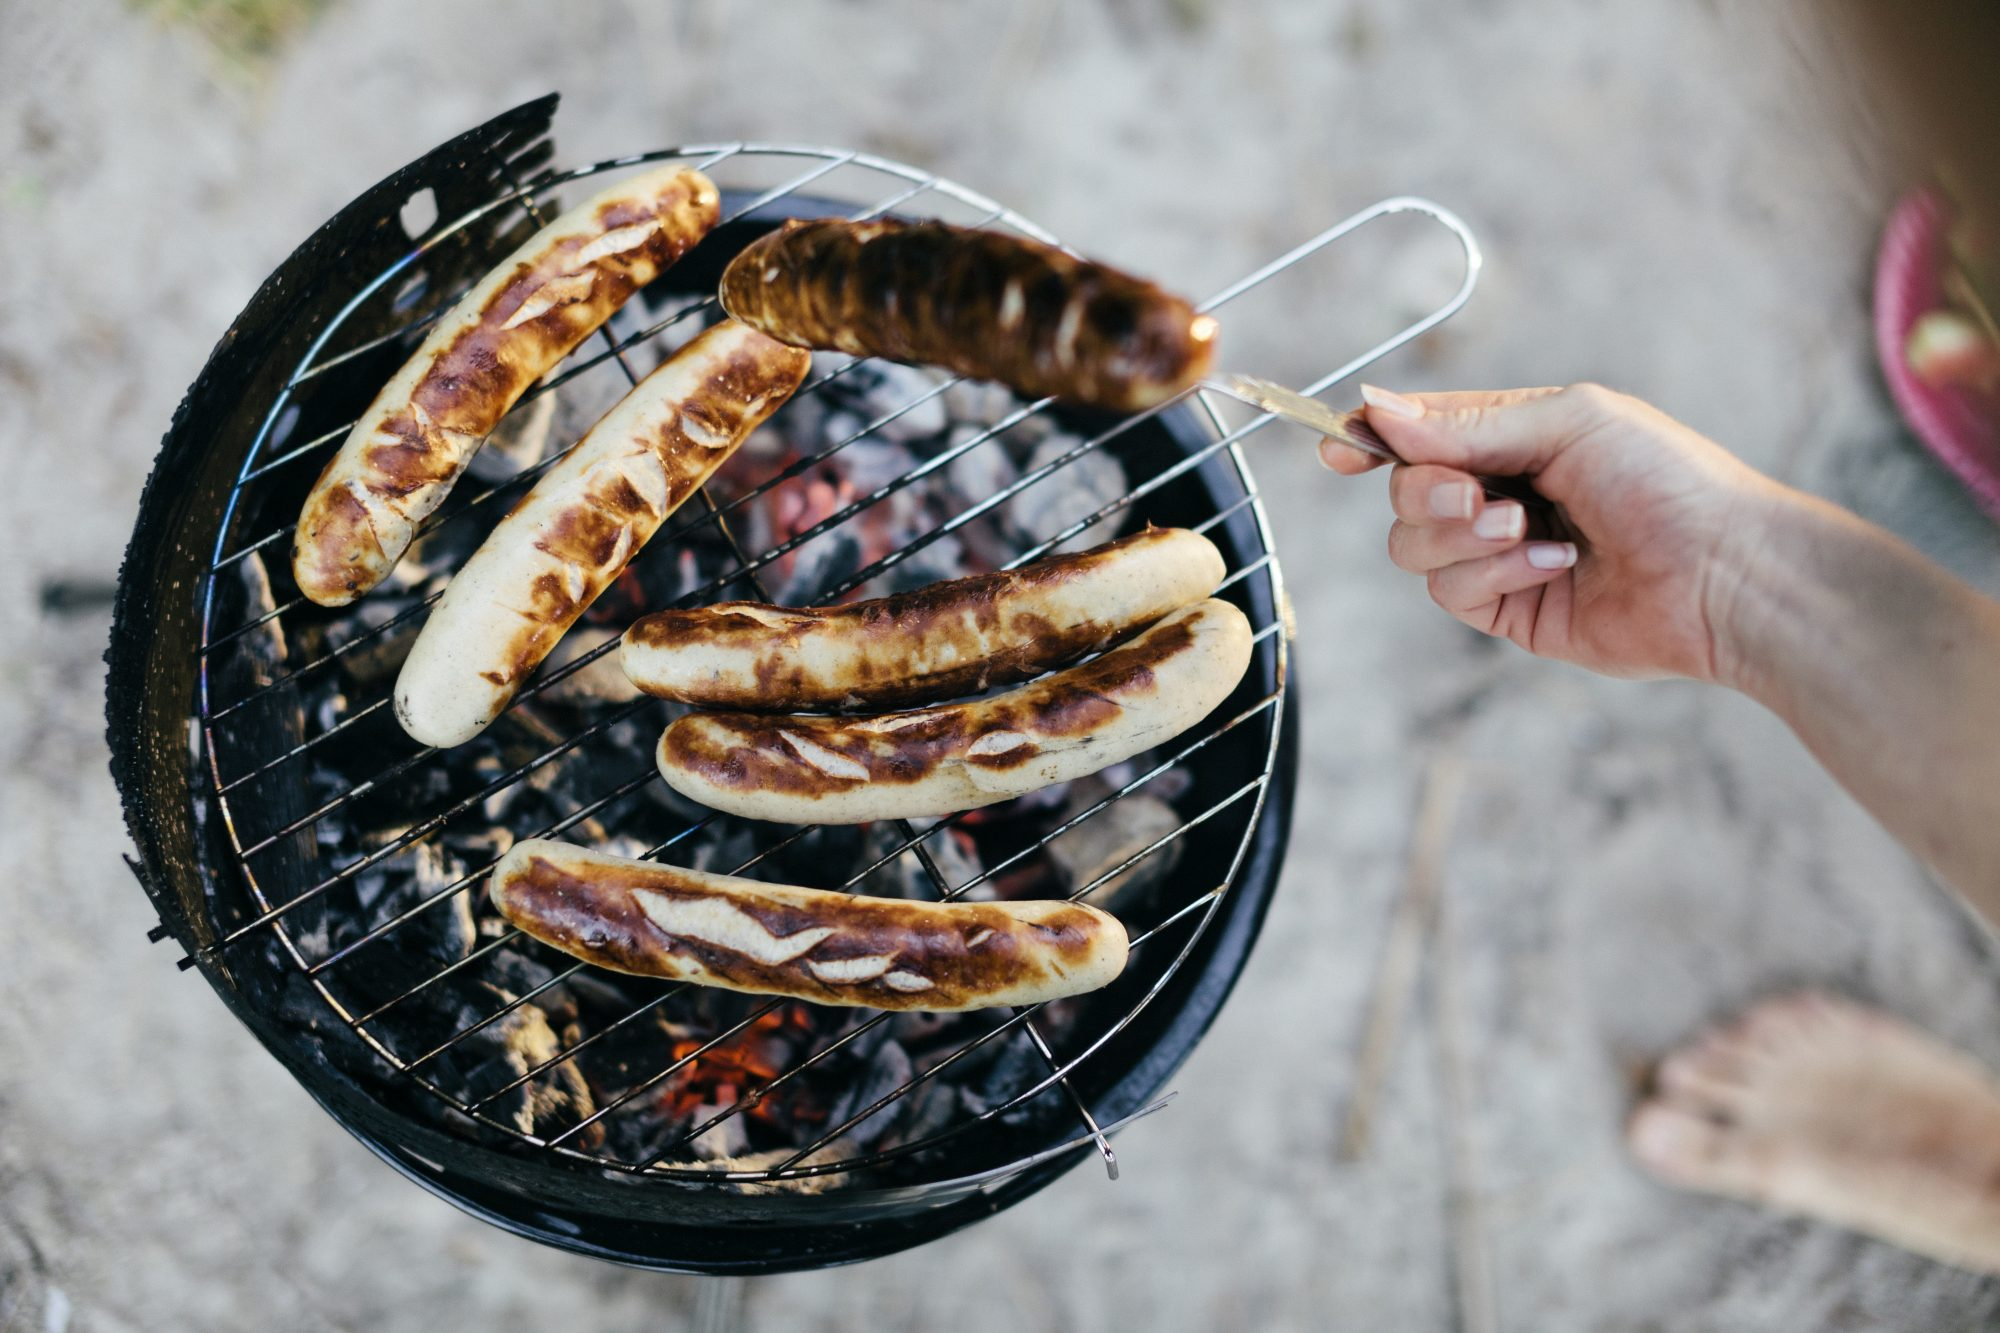 05-barbecued-meats-cancer-foods